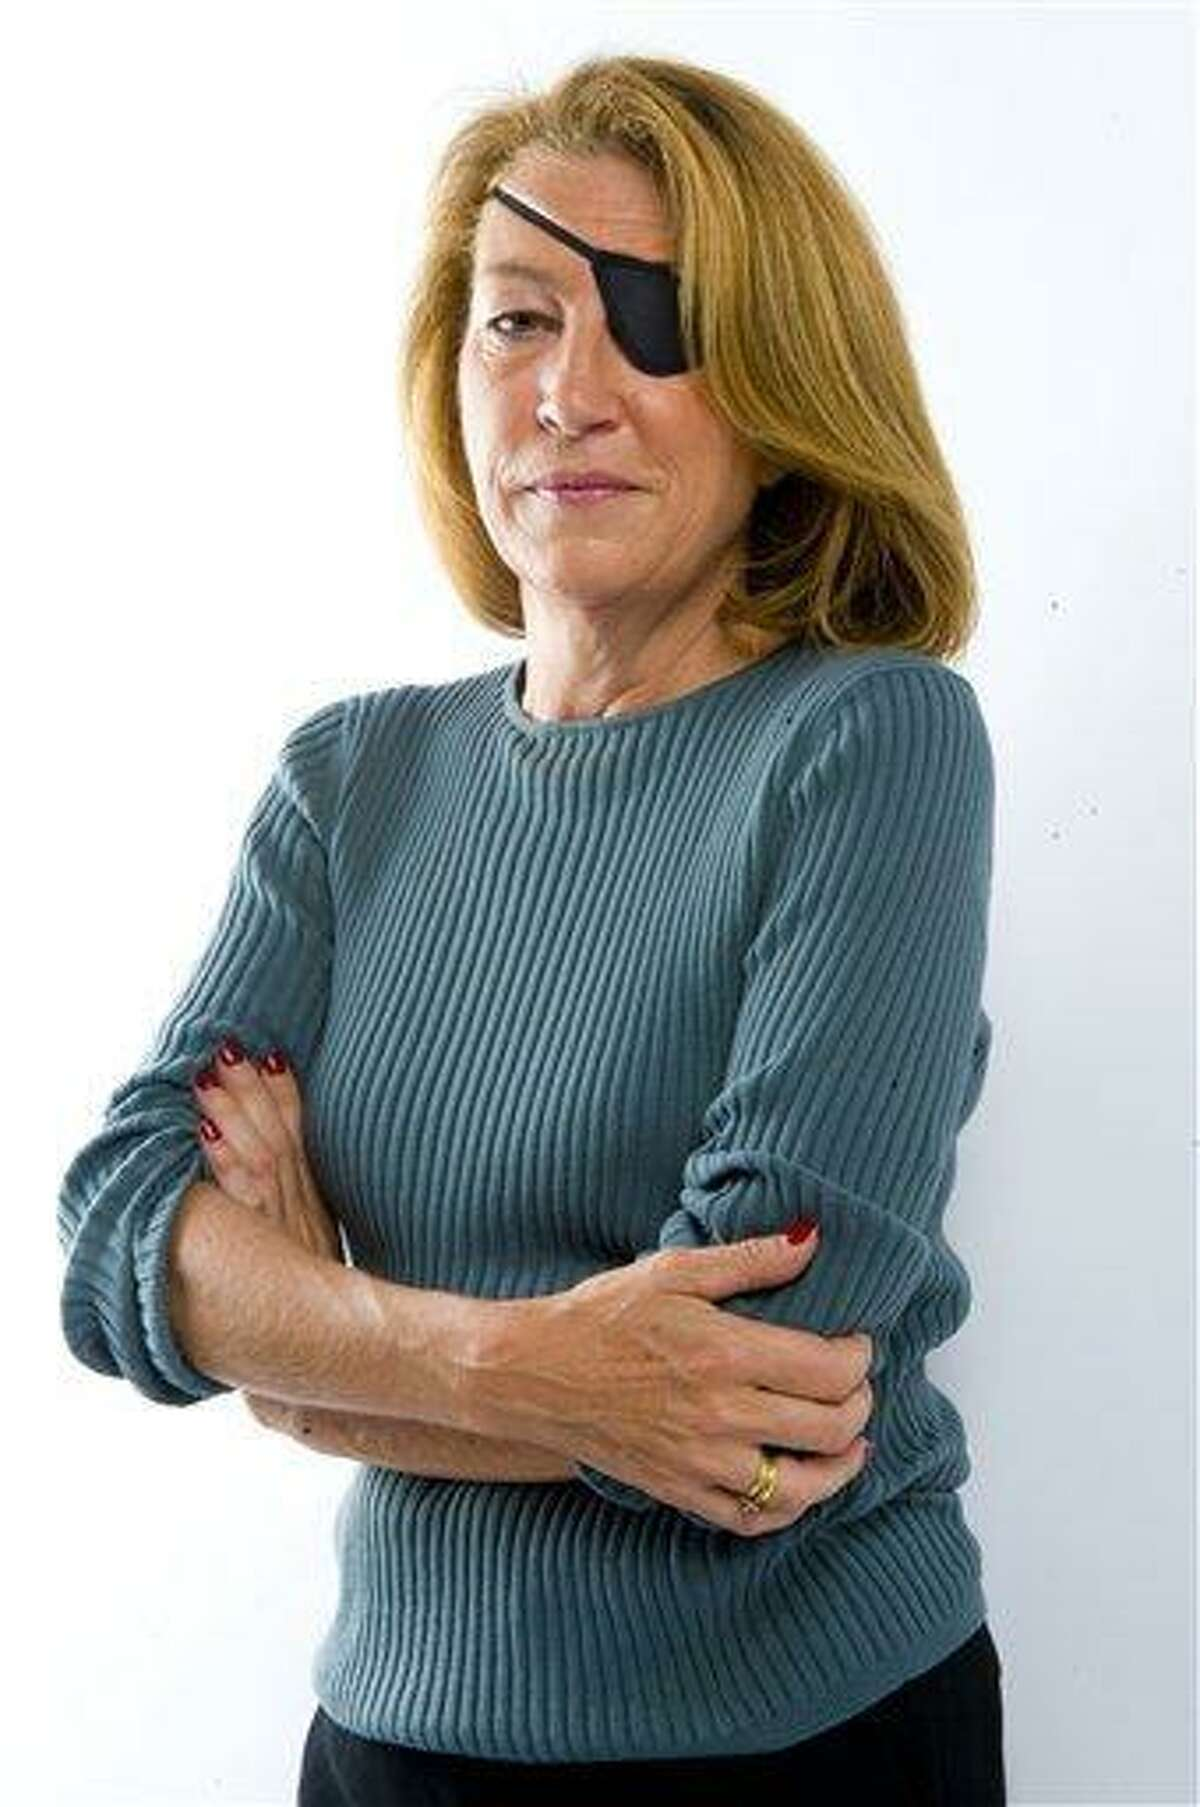 This is an undated image made available Wednesday by the Sunday Times in London of journalist Marie Colvin. A French government spokeswoman on Wednesday identified two Western reporters killed in Syria as American war reporter Marie Colvin and French photojournalist Remi Ochlik. Colvin, from Oyster Bay, New York, had been a foreign correspondent for Britain's Sunday Times for two decades, reporting from the world's most dangerous places. She lost the sight in one eye in Sri Lanka in 2001 but did not let that deter her. Associated Press